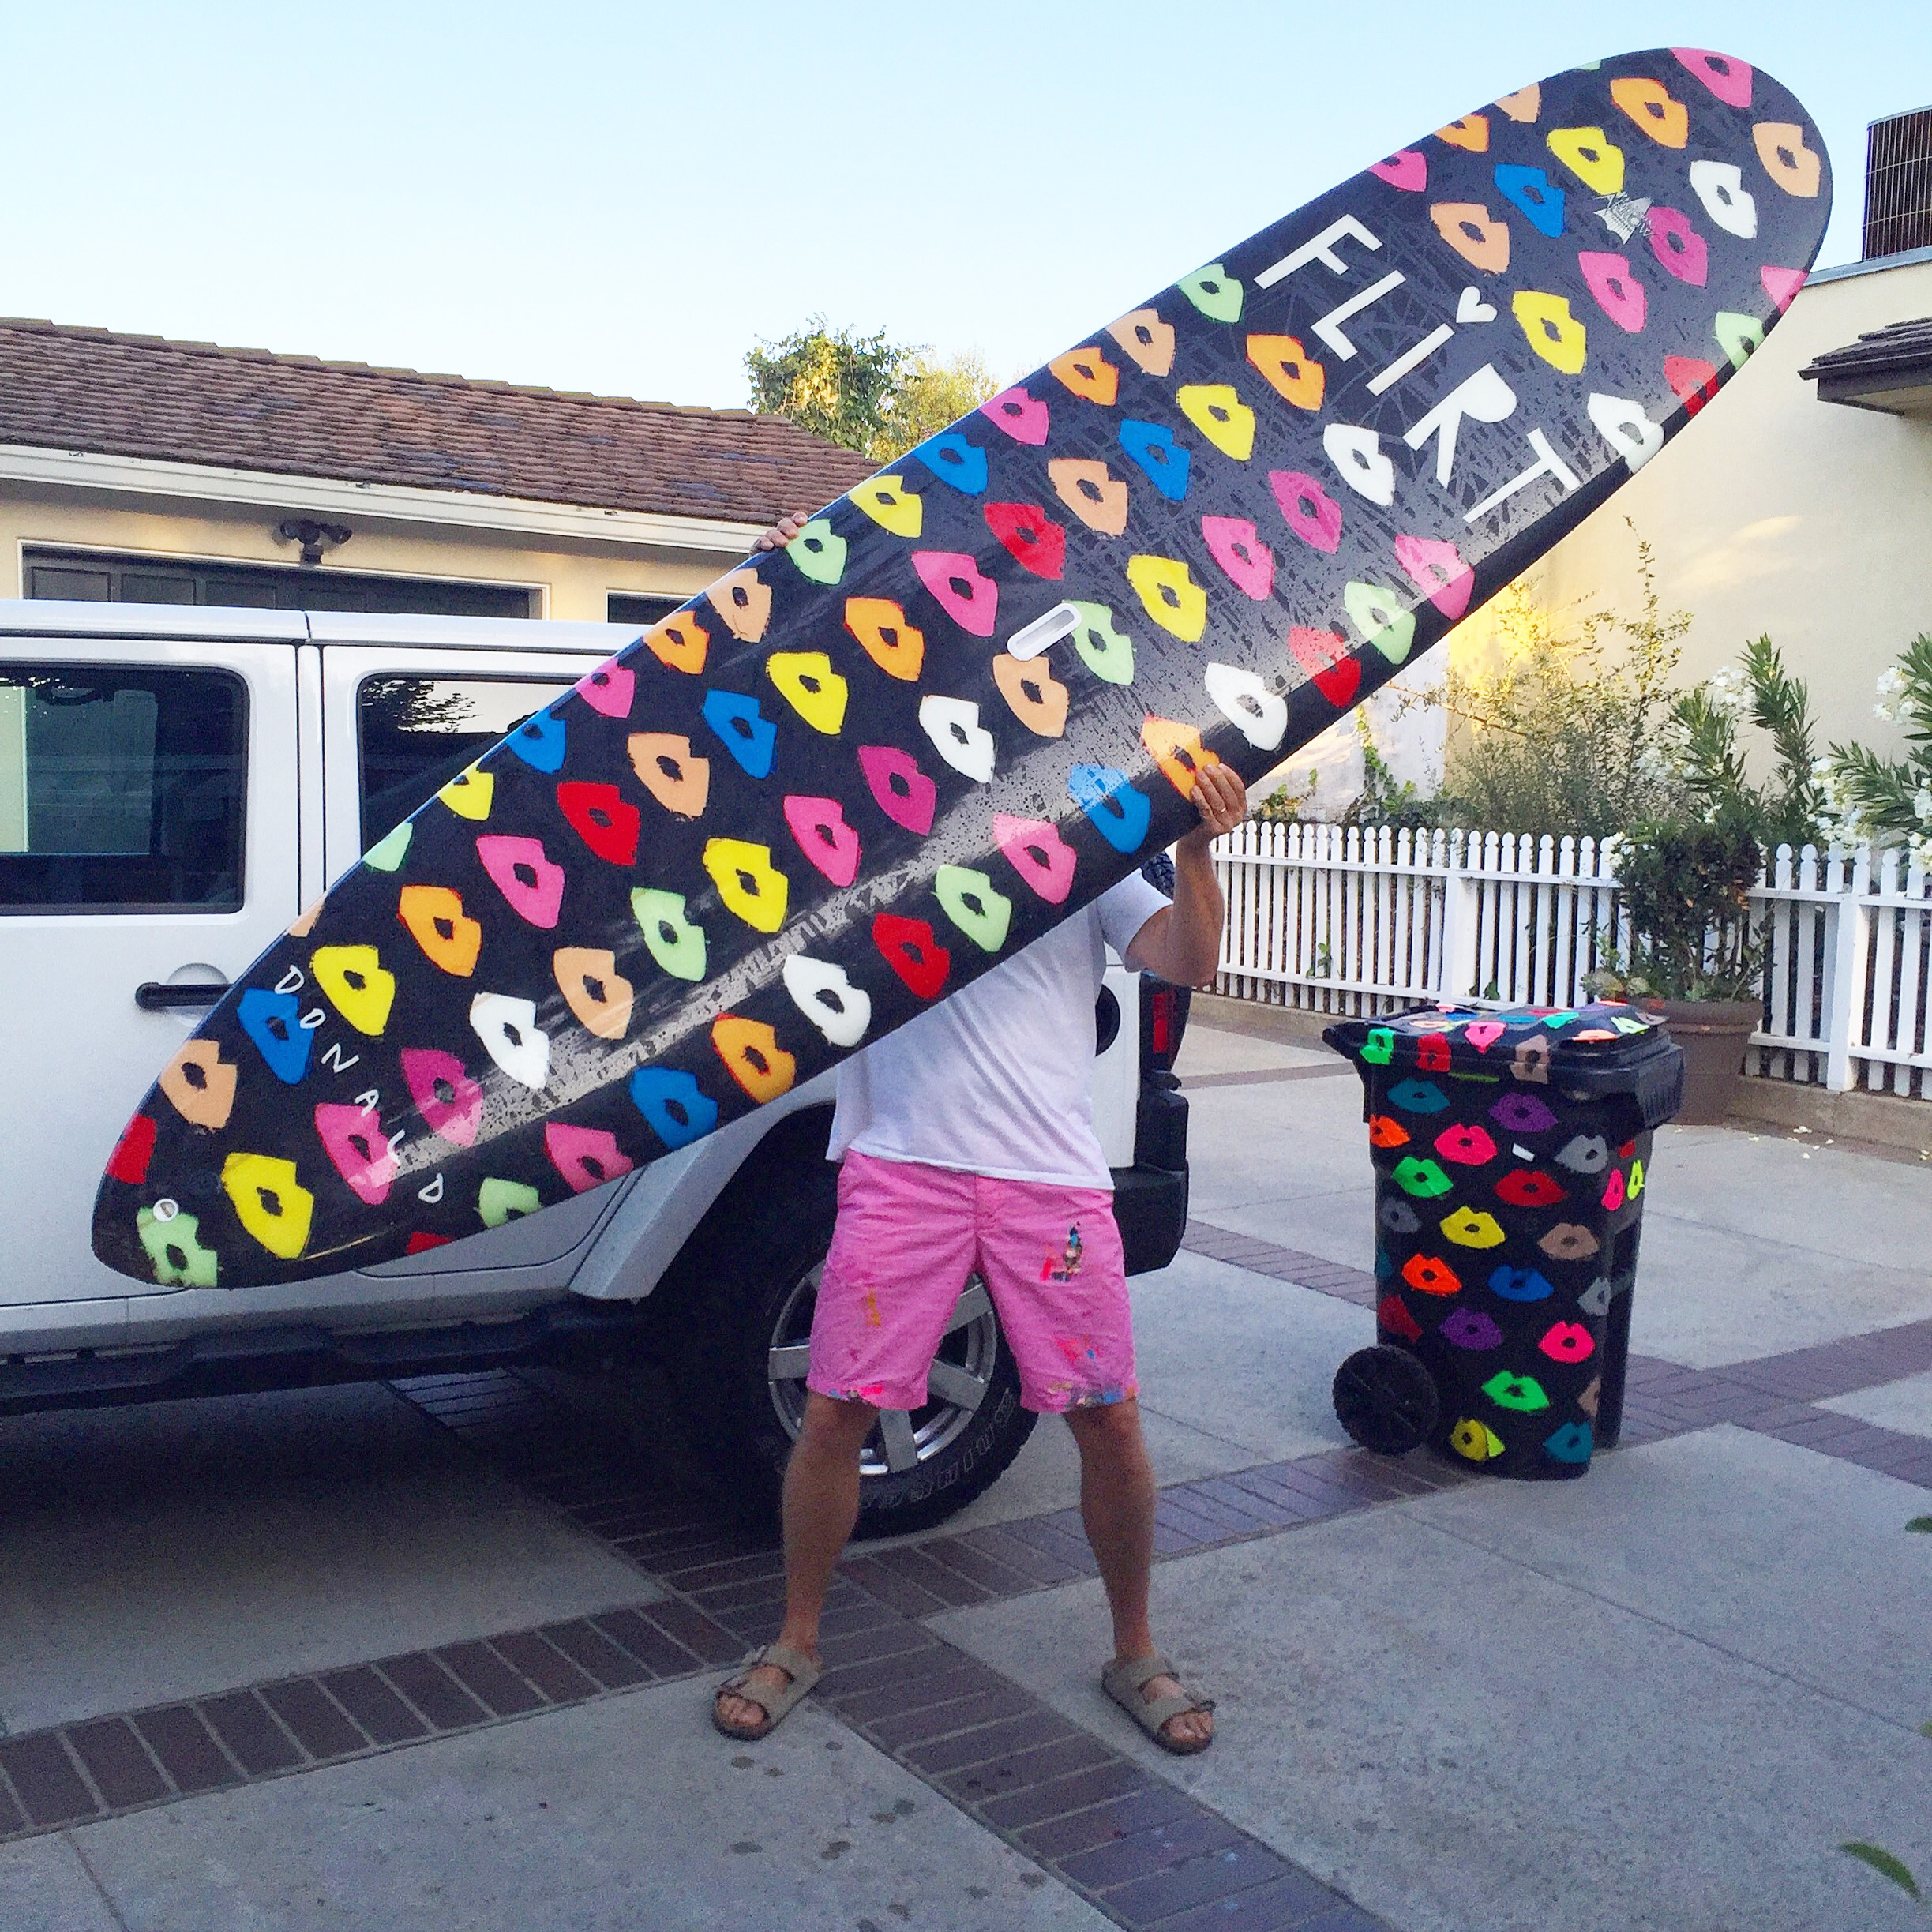 Donald Drawbertson Flirt Surfboard Design